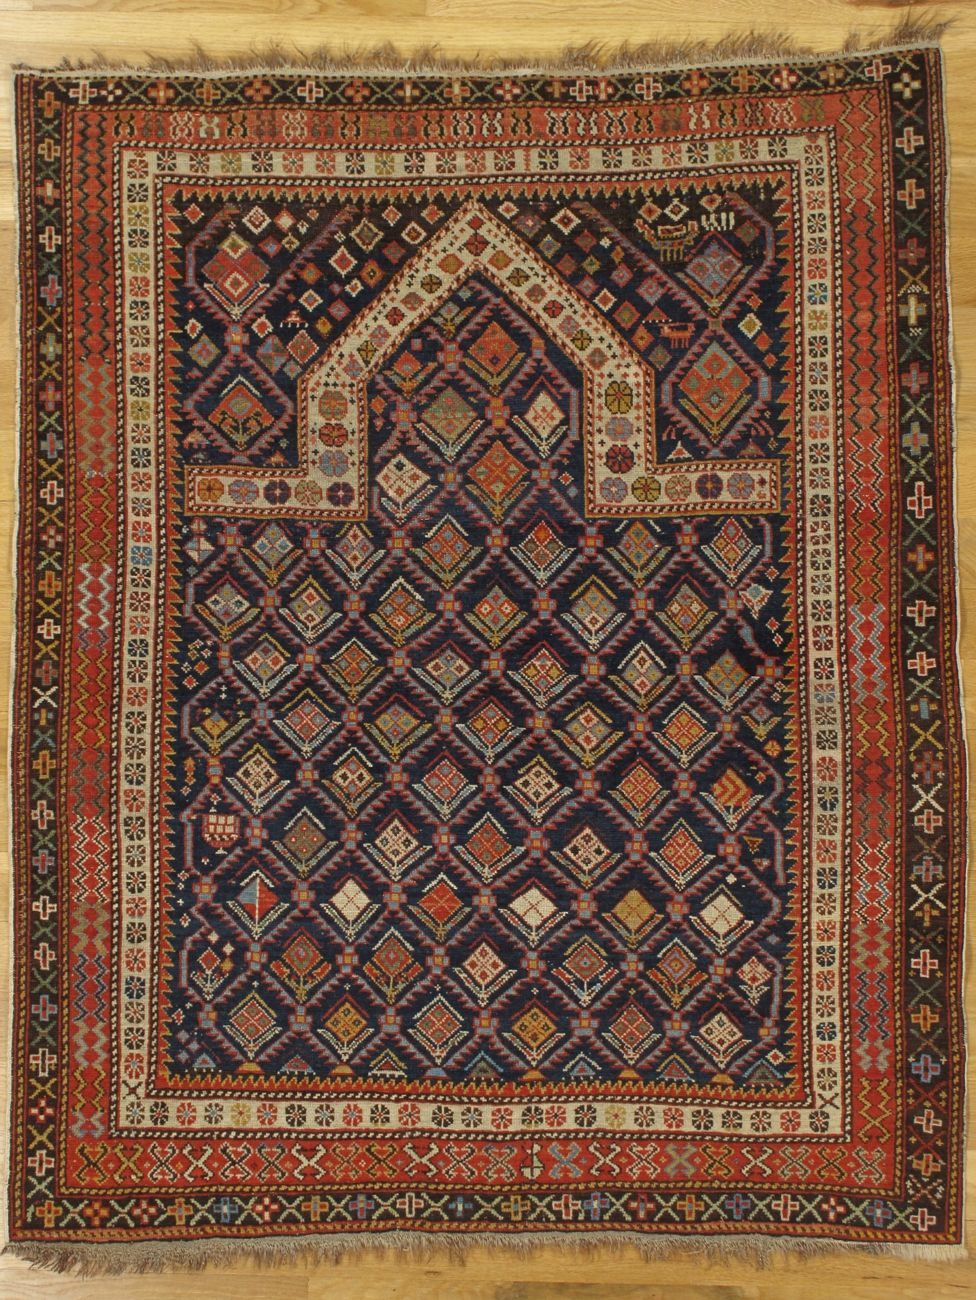 Navy Ground Shirvan Prayer Rug From Eastern Caucasus West Coast Of The Caspian Sea Age Circa 1880 Size 4 6 X3 9 137x114 C In 2020 Rugs Rugs On Carpet Persian Rug